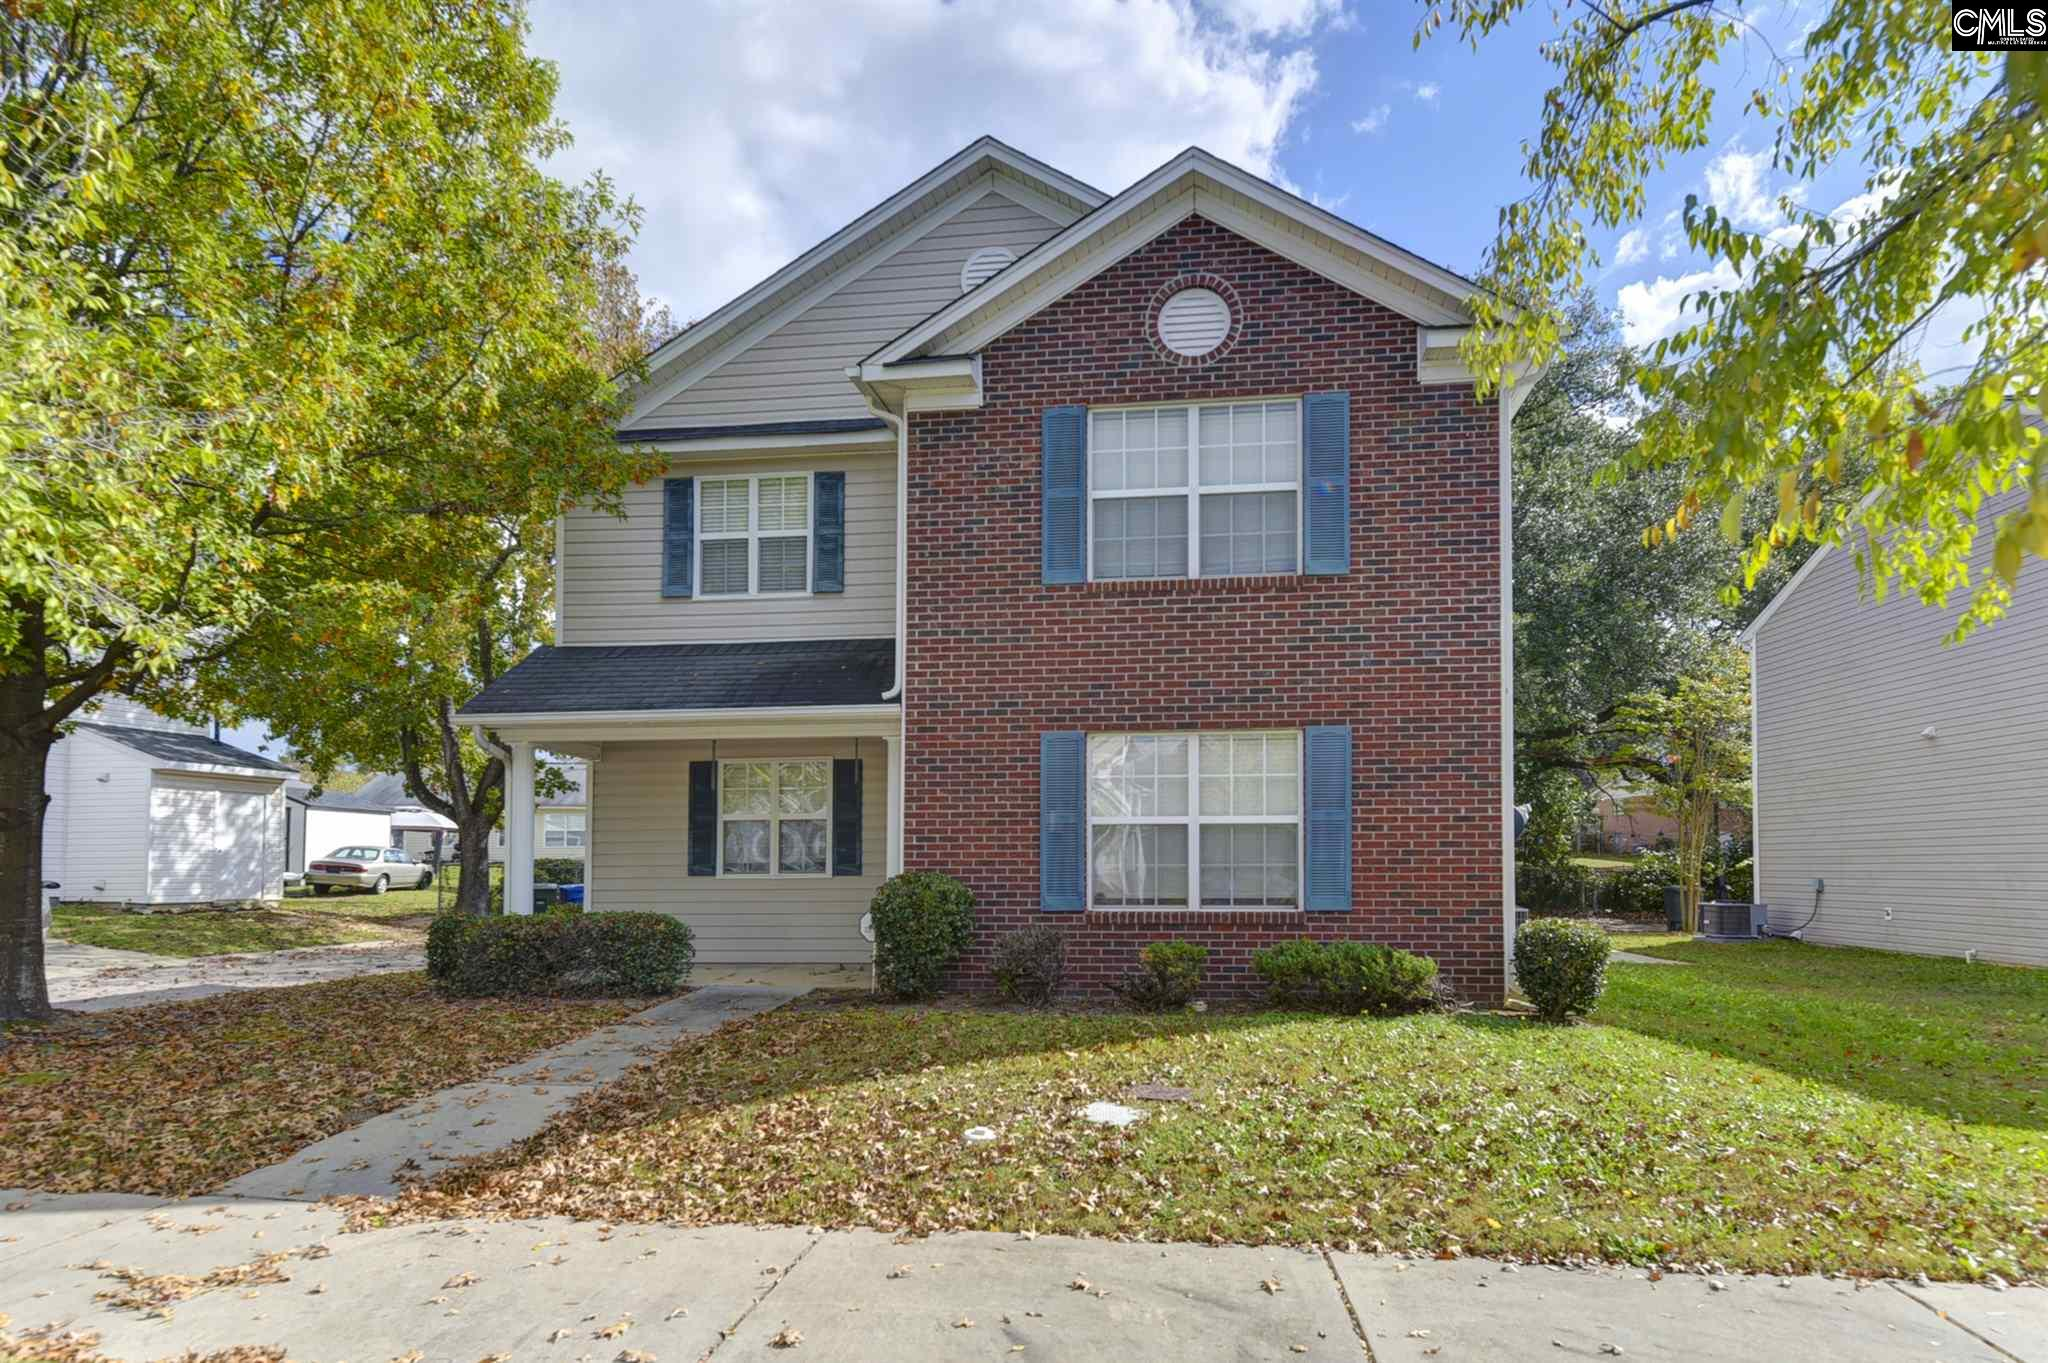 2152 Walker Solomon Columbia, SC 29204-1130